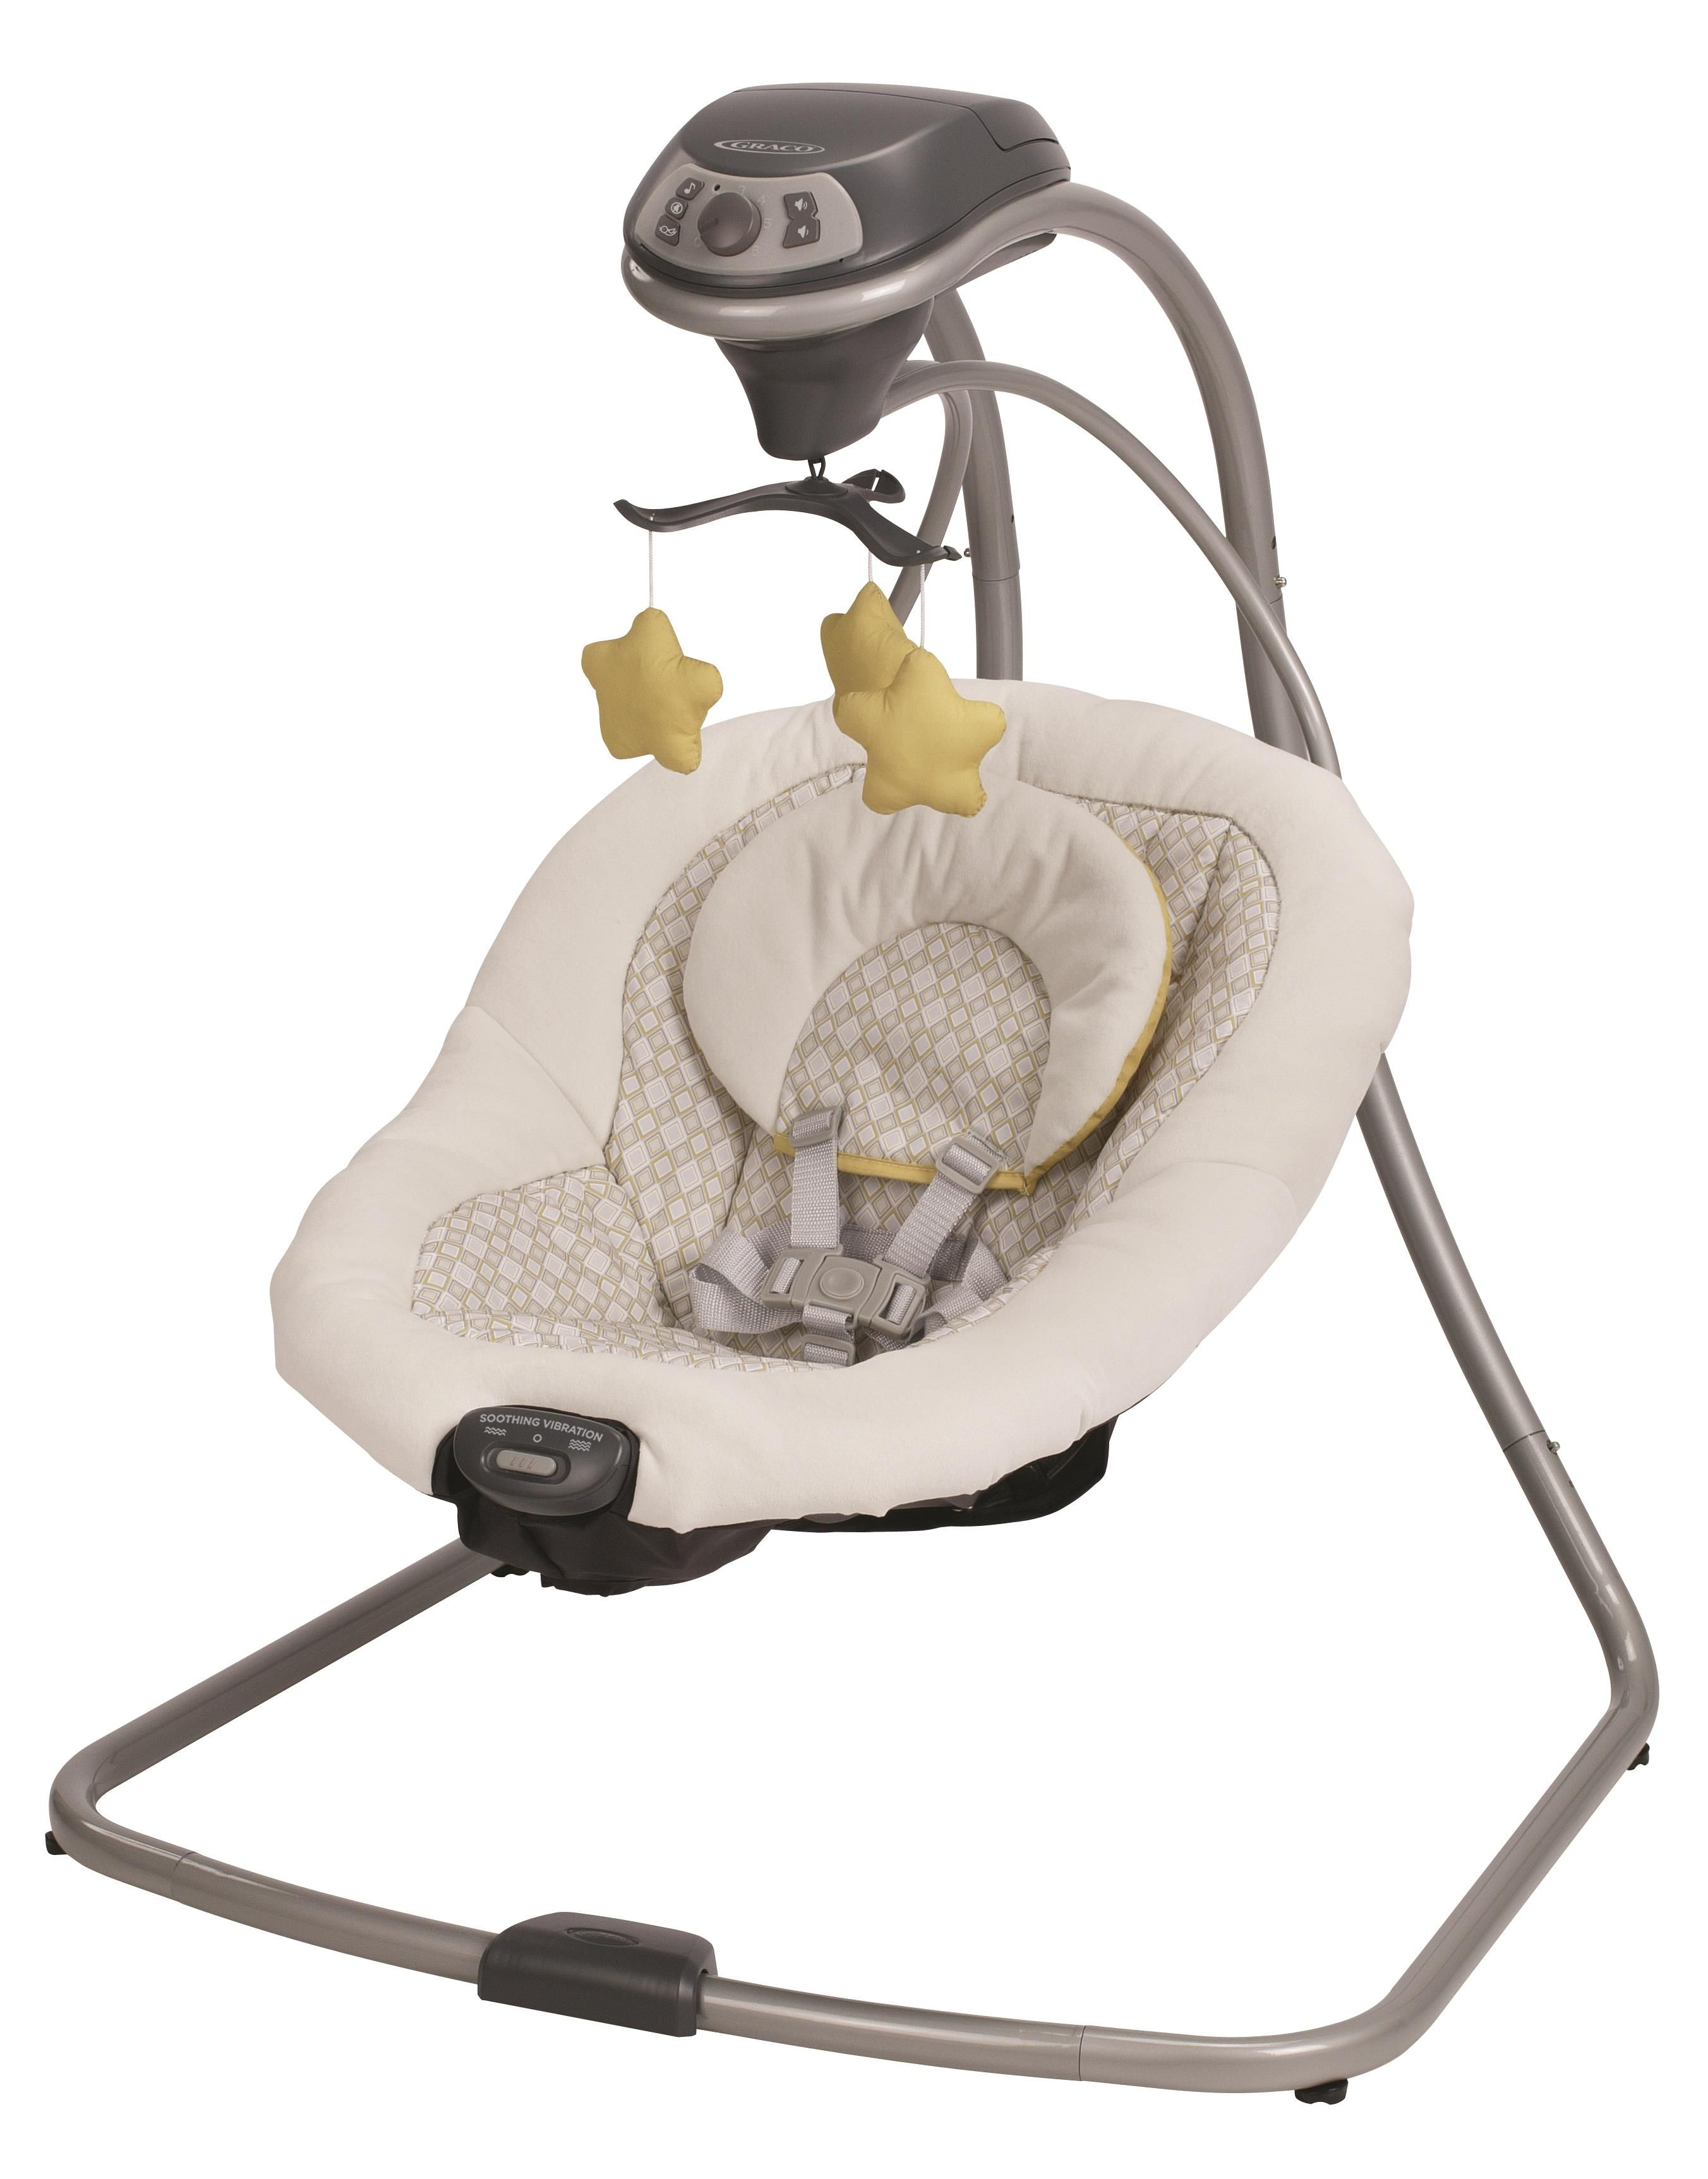 ebd05f96db09 Graco® Simple Sway™ Swing in yellow and grey Henson fashion. Small ...